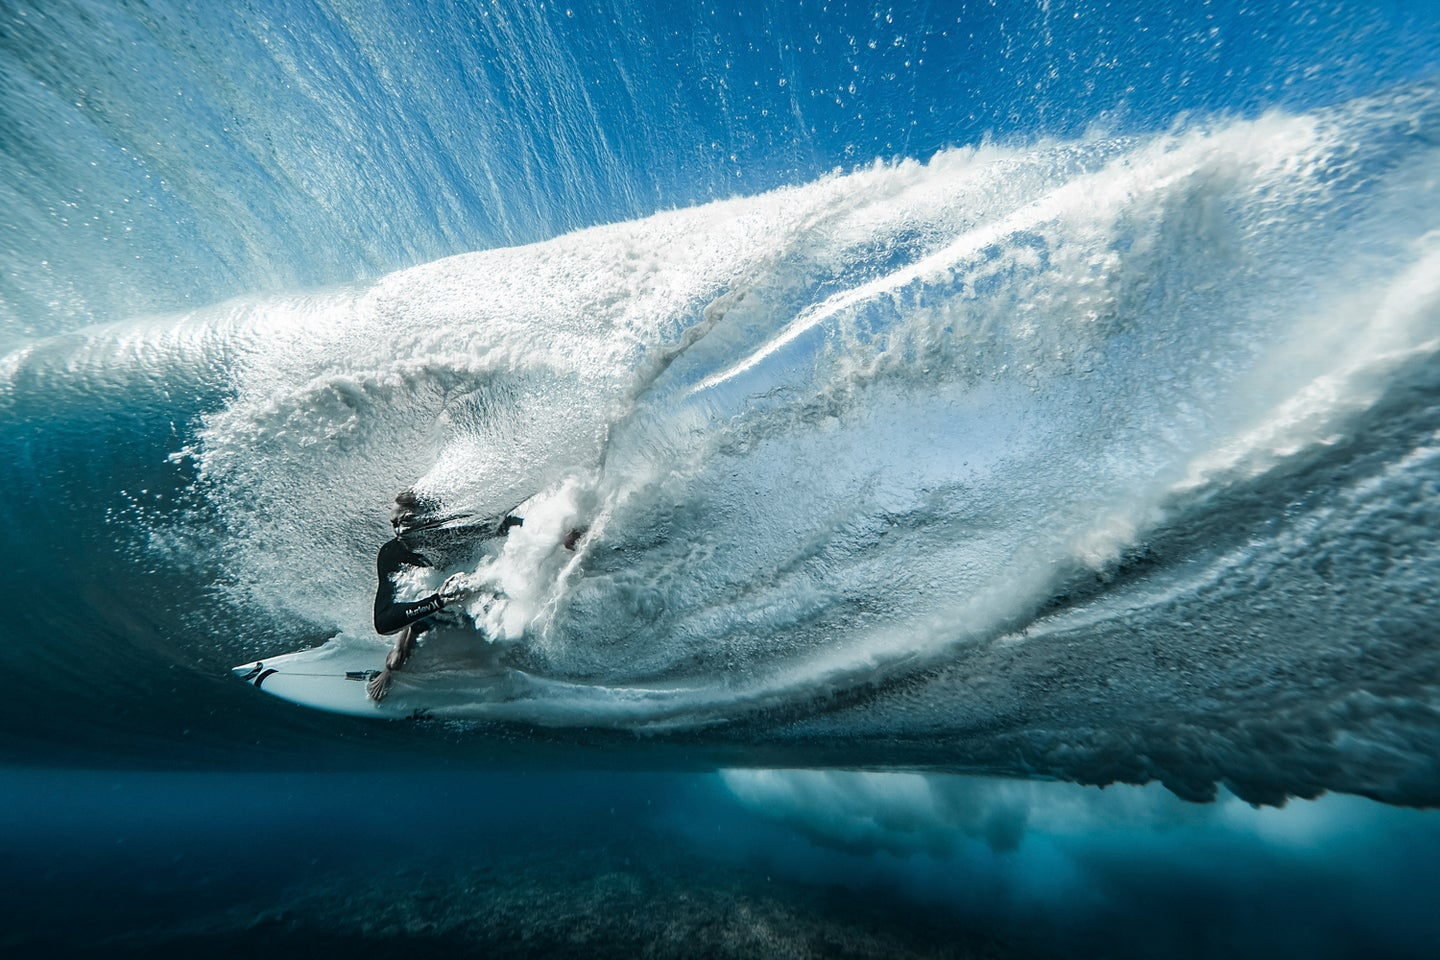 underwater shot of Ace Buchan kicking out from the barrel through the wave